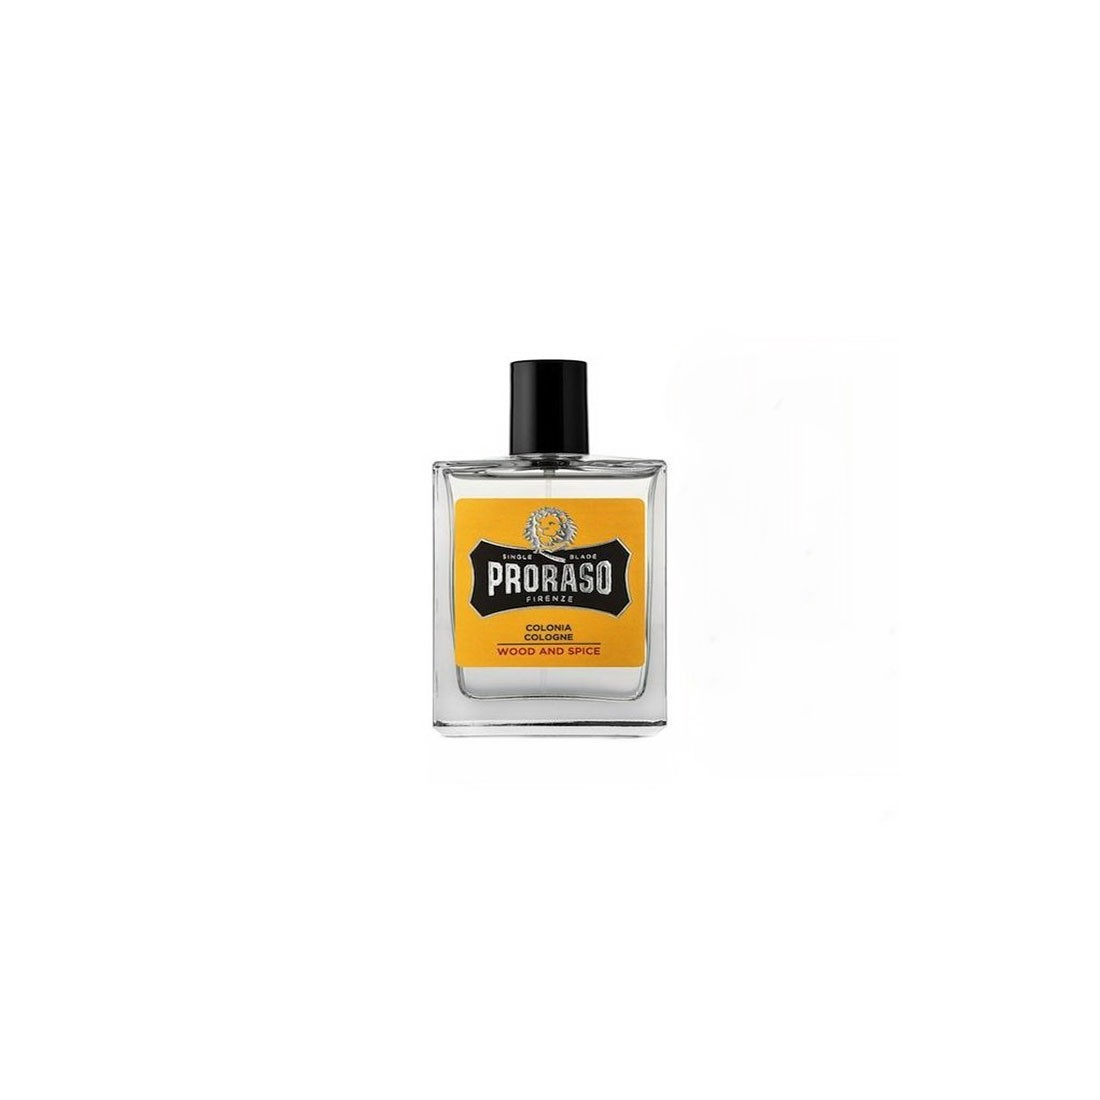 Proraso Wood And Spice Cologne 100ml